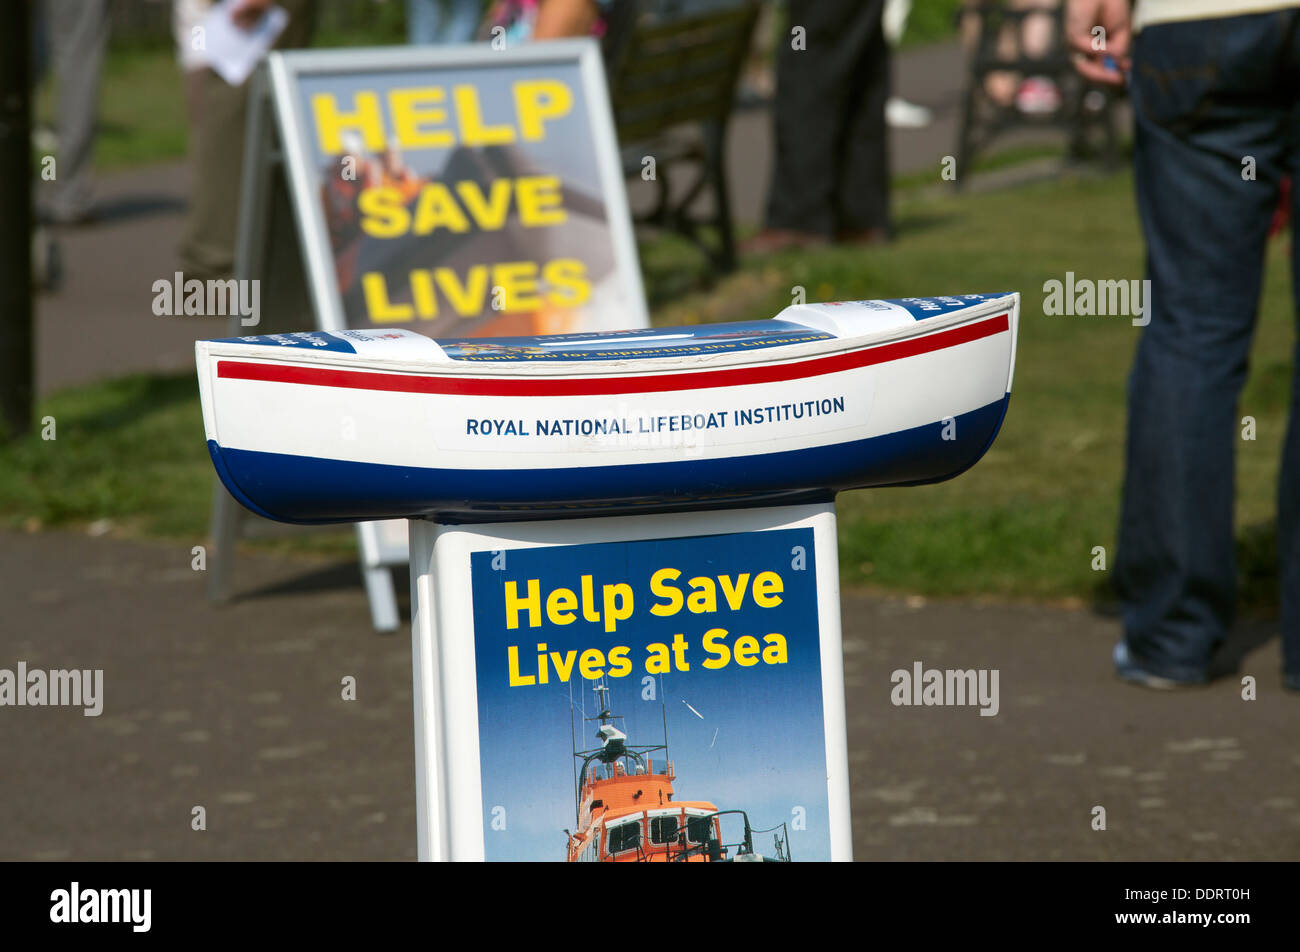 Roayl National lifeboat institution RNLI collection box - Stock Image